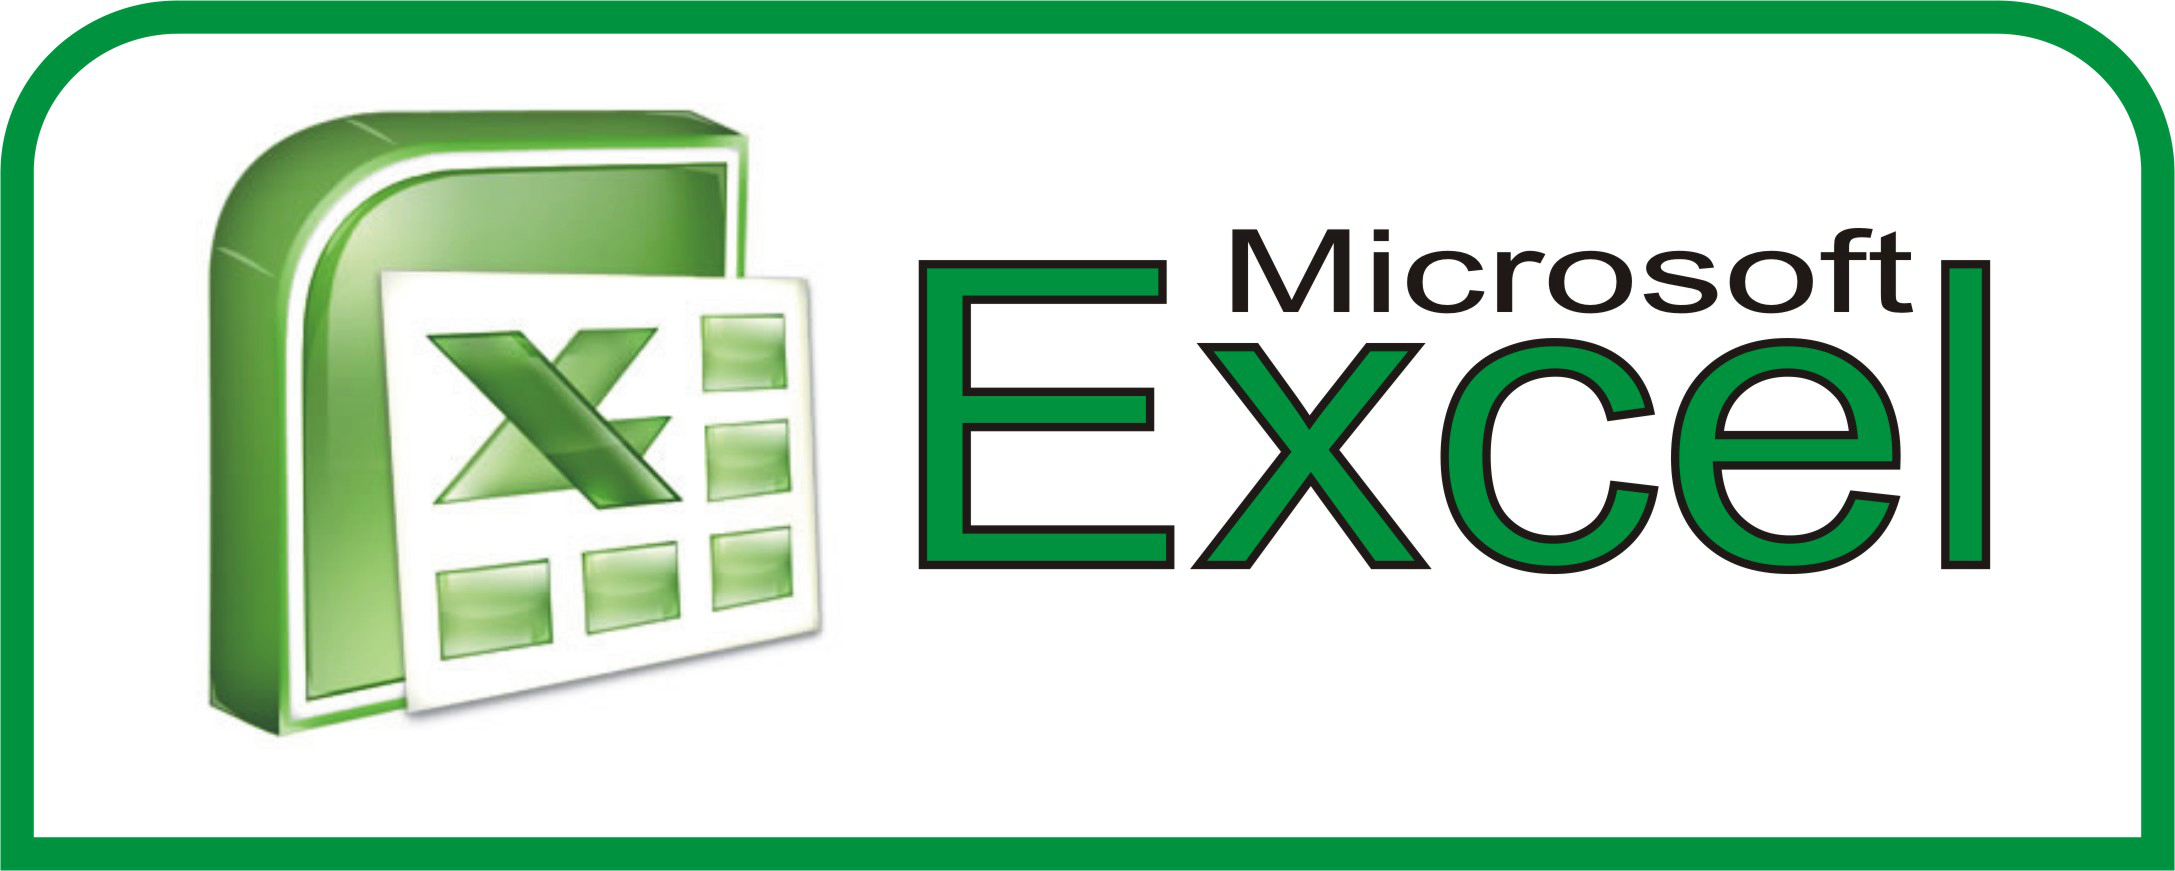 Ediblewildsus  Fascinating  Excel Shortcuts You Probably Didnt Know About  Techdissected With Fair Recording Macros In Excel Besides Counting Duplicates In Excel Furthermore Flowchart Excel With Amazing Excel Loan Amortization Template Also Time Series Graph Excel In Addition Excel File Format Is Not Valid And Excel Format Date As Text As Well As Linear Regression Analysis Excel Additionally Import Word Into Excel From Techdissectedcom With Ediblewildsus  Fair  Excel Shortcuts You Probably Didnt Know About  Techdissected With Amazing Recording Macros In Excel Besides Counting Duplicates In Excel Furthermore Flowchart Excel And Fascinating Excel Loan Amortization Template Also Time Series Graph Excel In Addition Excel File Format Is Not Valid From Techdissectedcom